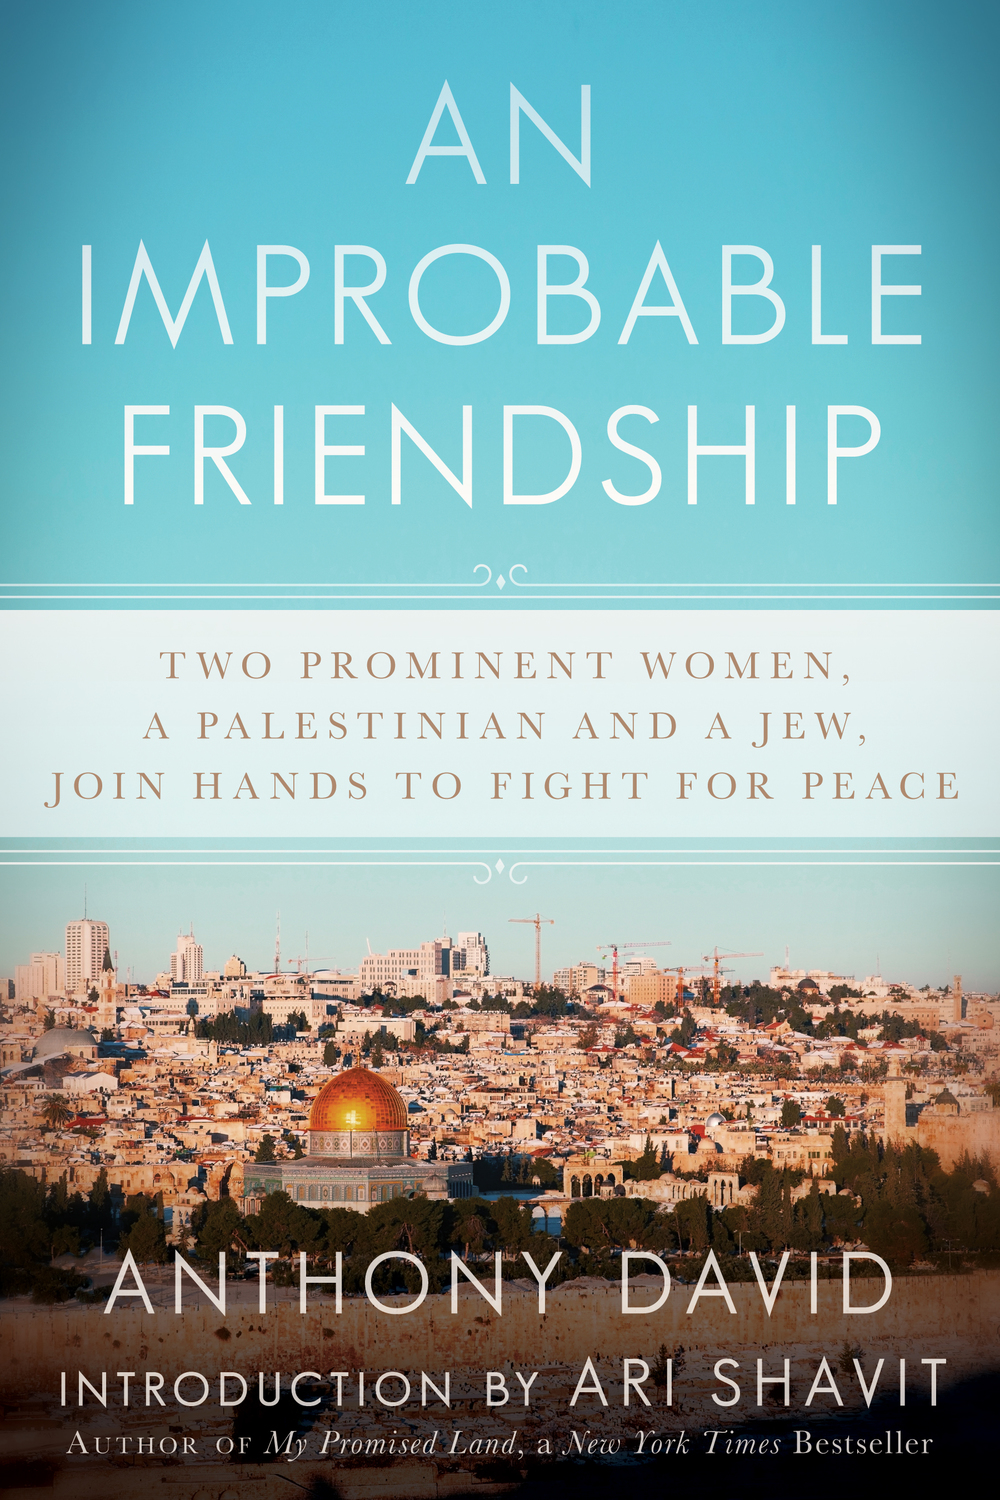 An Improbable Friendship: Two Prominent Women, a Palestinian and a Jew, Join Hands to Fight for Peace, by Anthony David Skyhorse Publishing